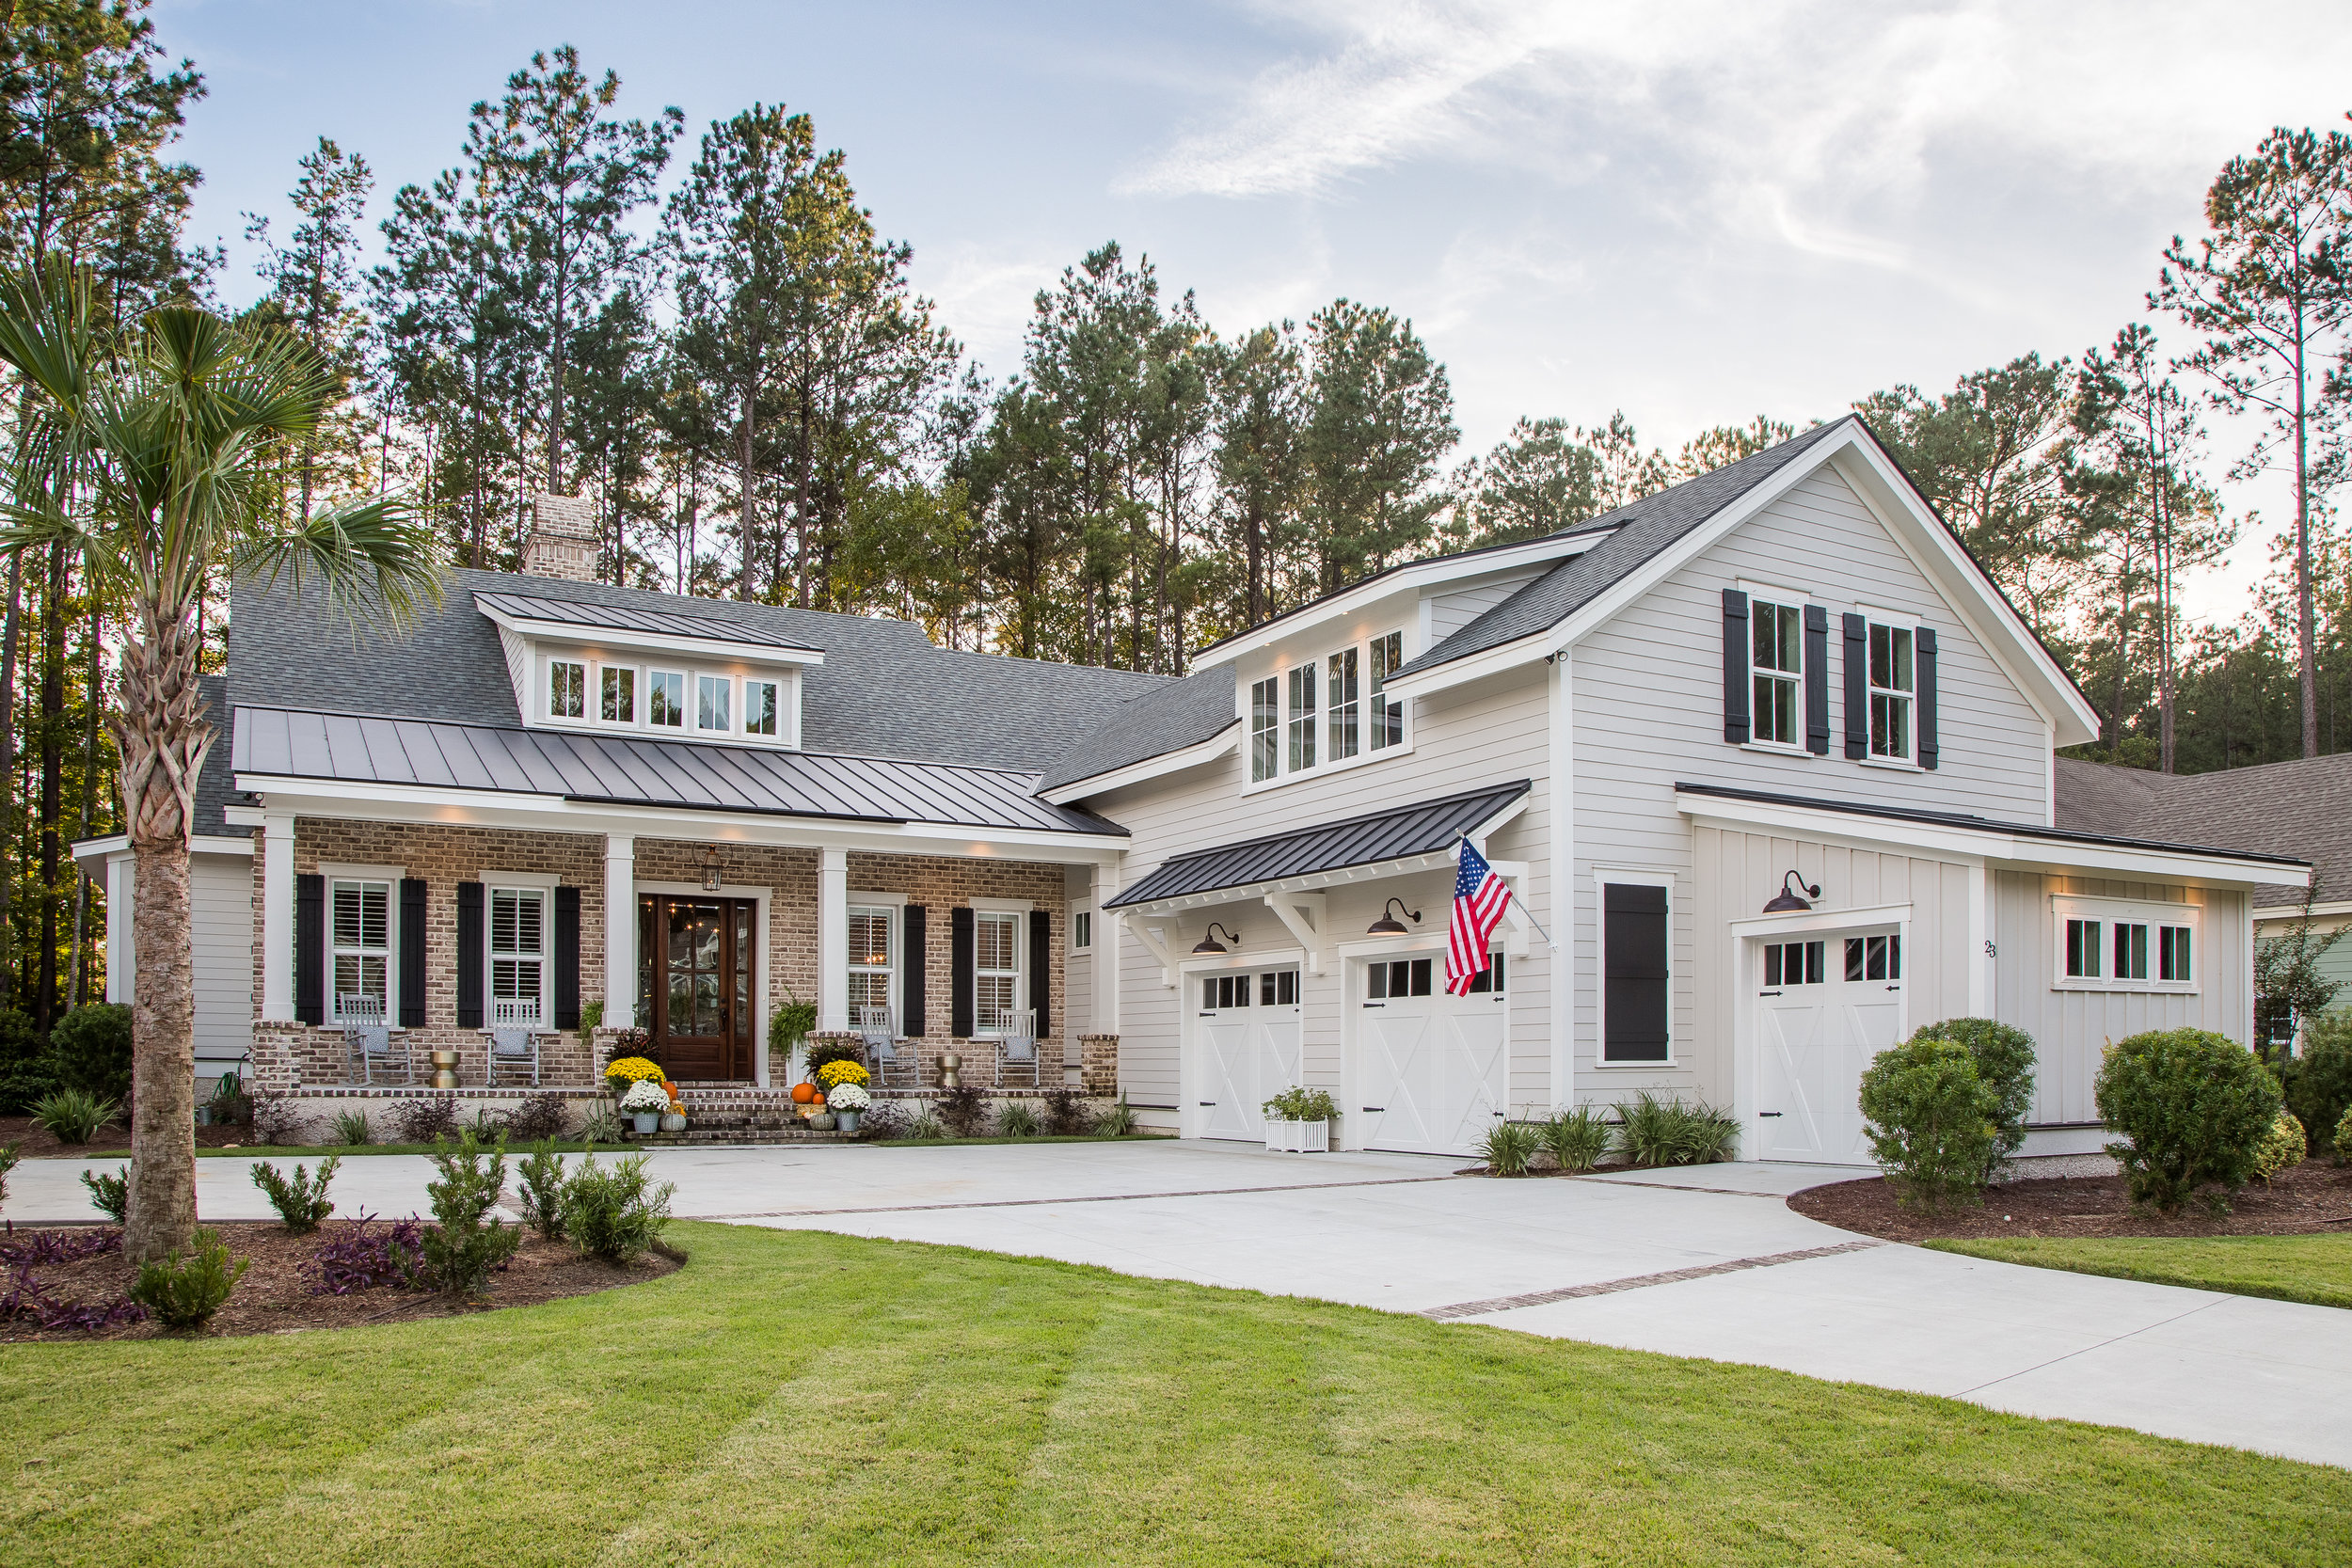 DRIFTWOOD COURT - HILTON HEAD AREA HOMEBUILDERS ASSOCIATIONLIGHTHOUSE AWARD WINNER 2018